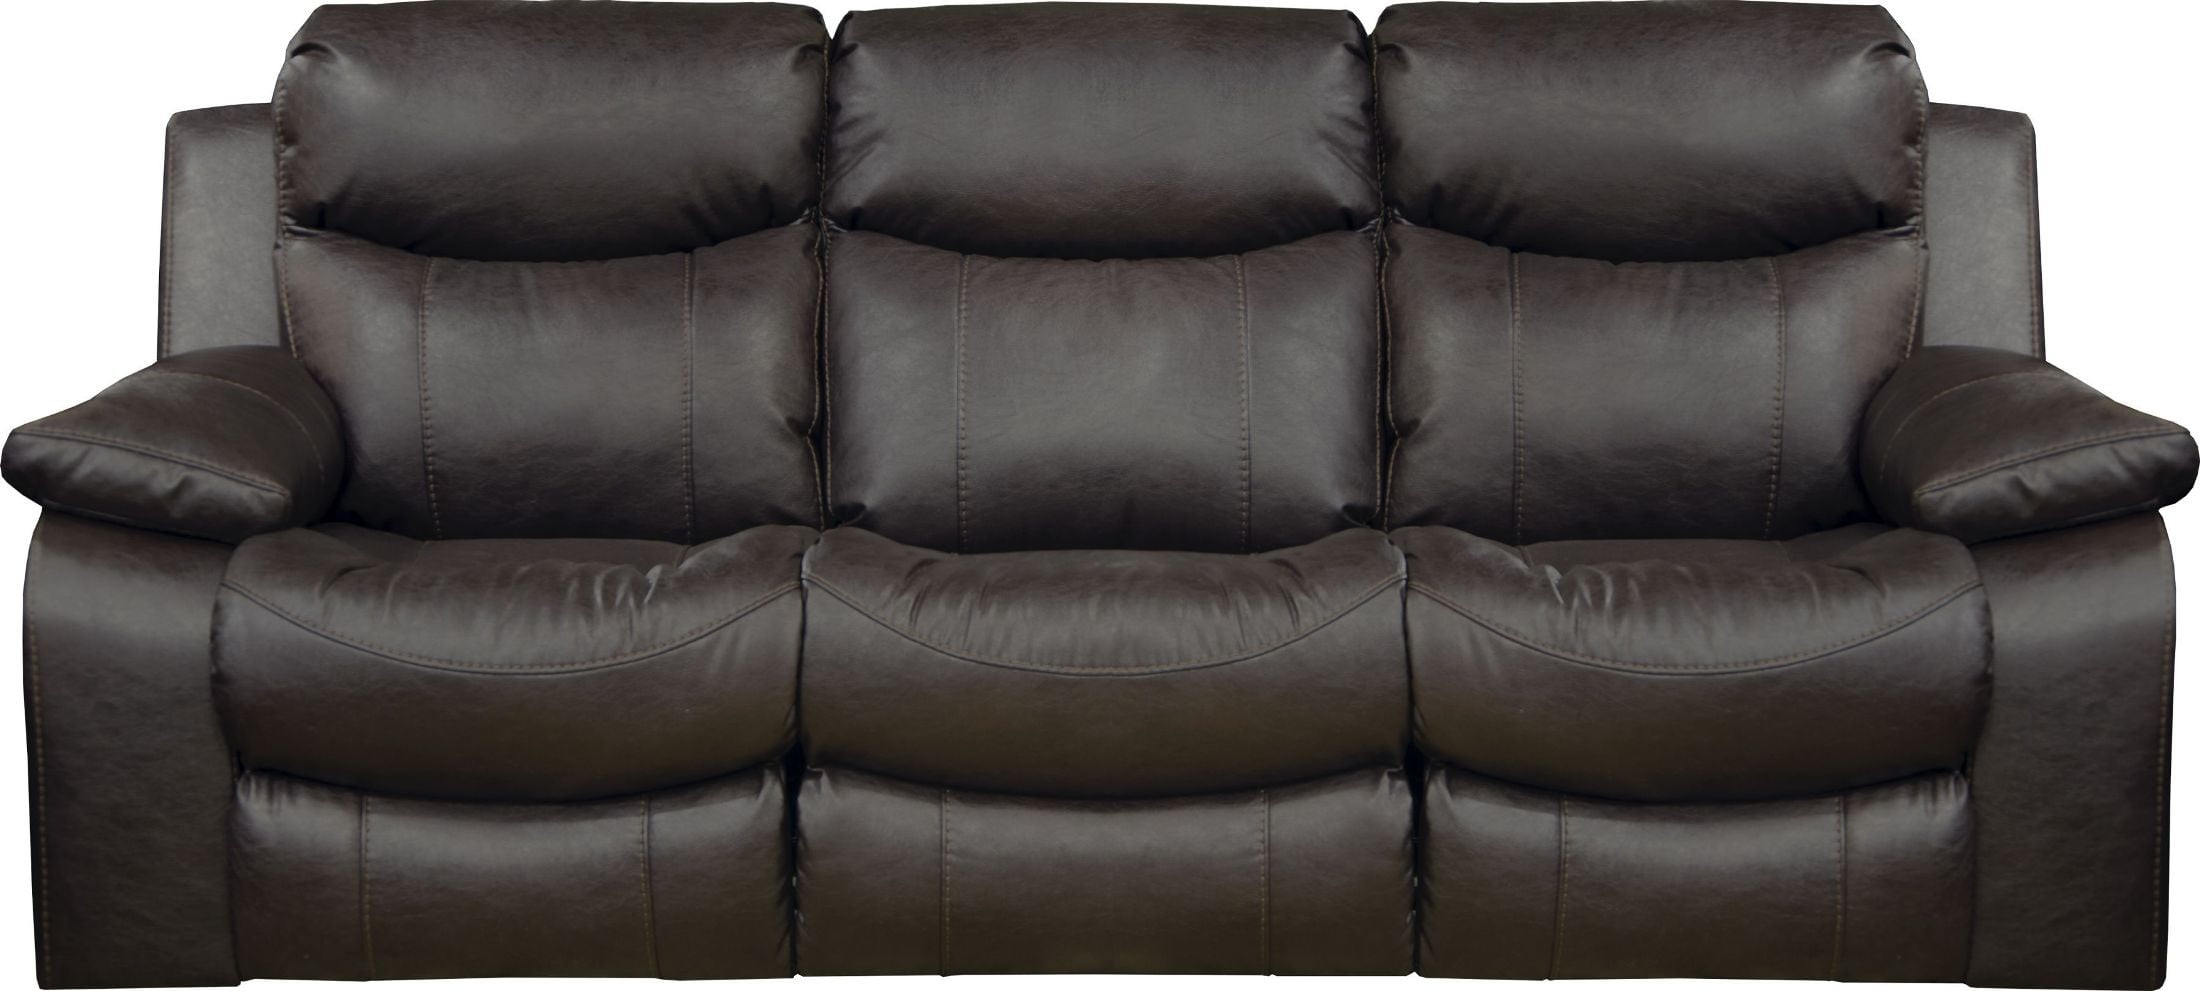 Connor Godiva Power Reclining Sofa With Drop Down Table From Catnapper |  Coleman Furniture